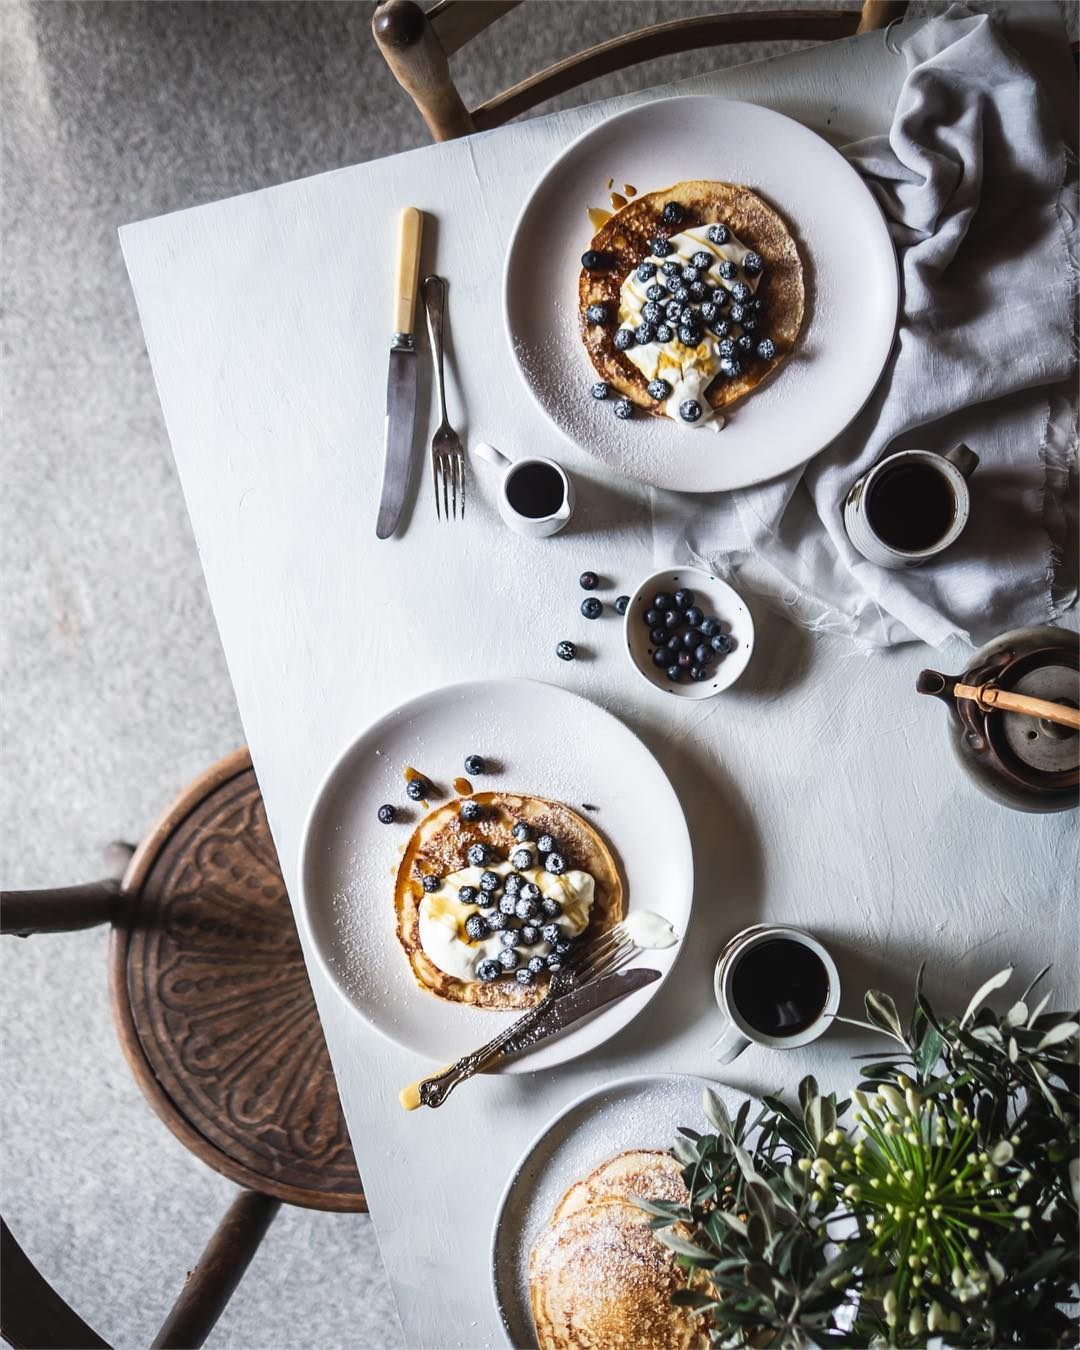 table set with plates of blueberry pancakes